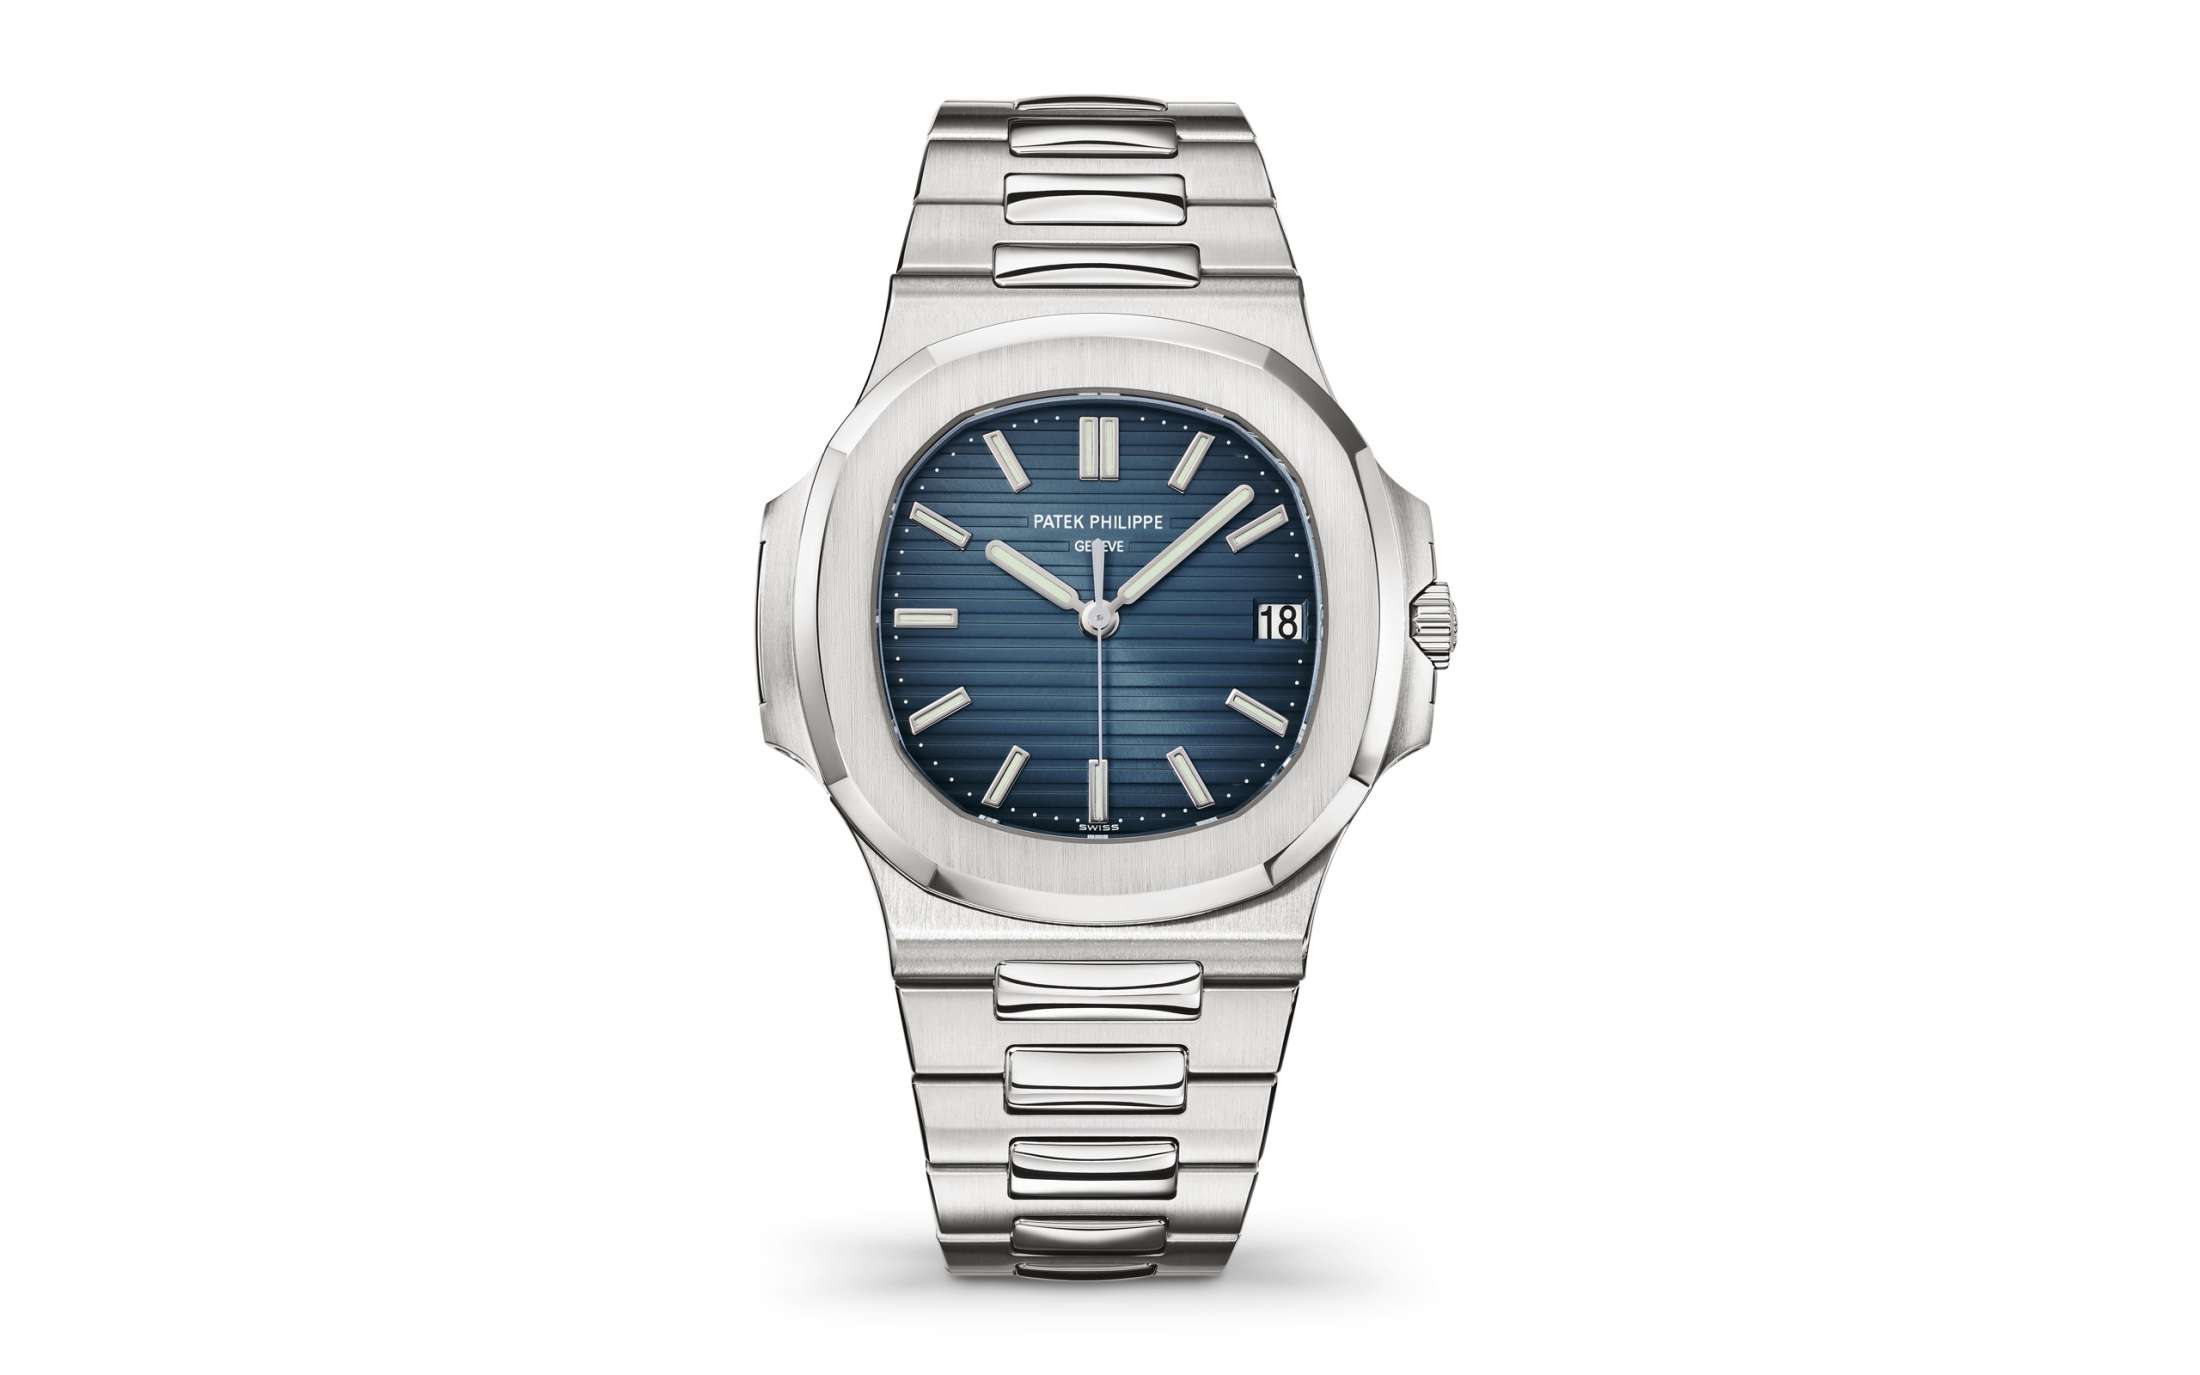 Watch Brands to Watch at BaselWorld 2019 - Nautilus 5711/1A baselworld Watch Brands to Watch at BaselWorld 2019 5711 1A 010 1